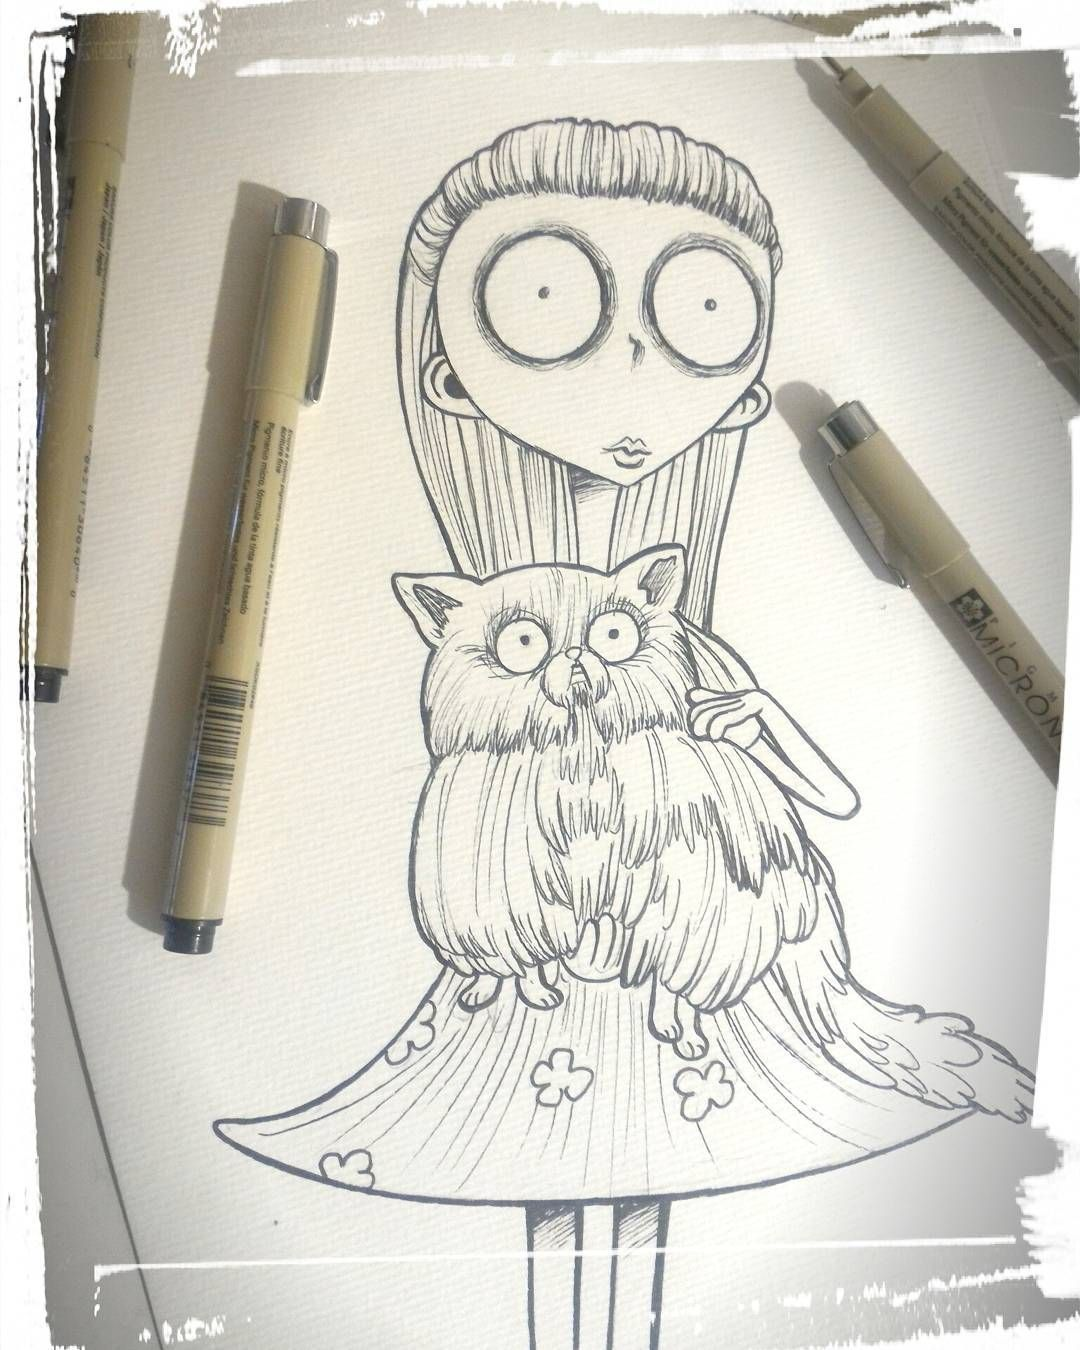 Rodrigo Cardoso On Instagram Frankenweenie Nankin On Paper Disney Movies Animation Stopmotion Timburton Disney Drawings Artist Inspiration Stop Motion